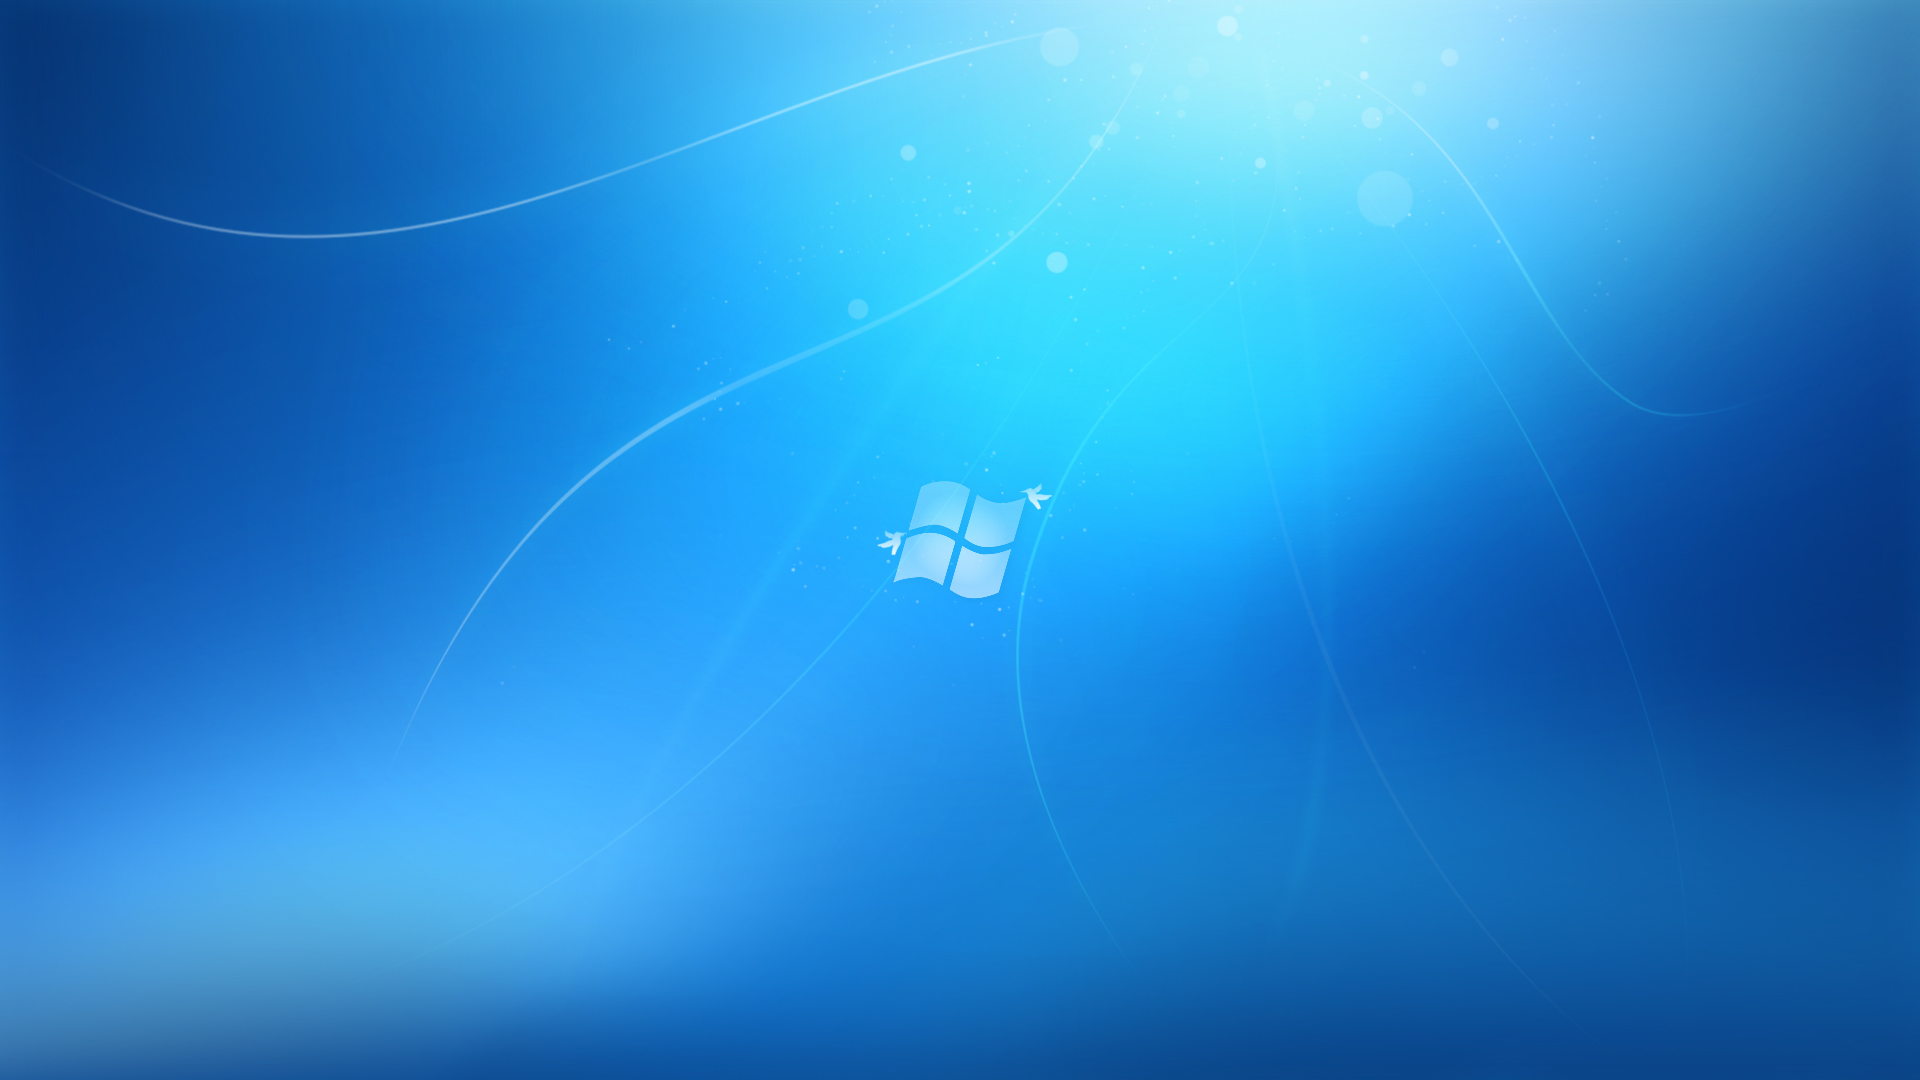 Hd wallpapers windows 8